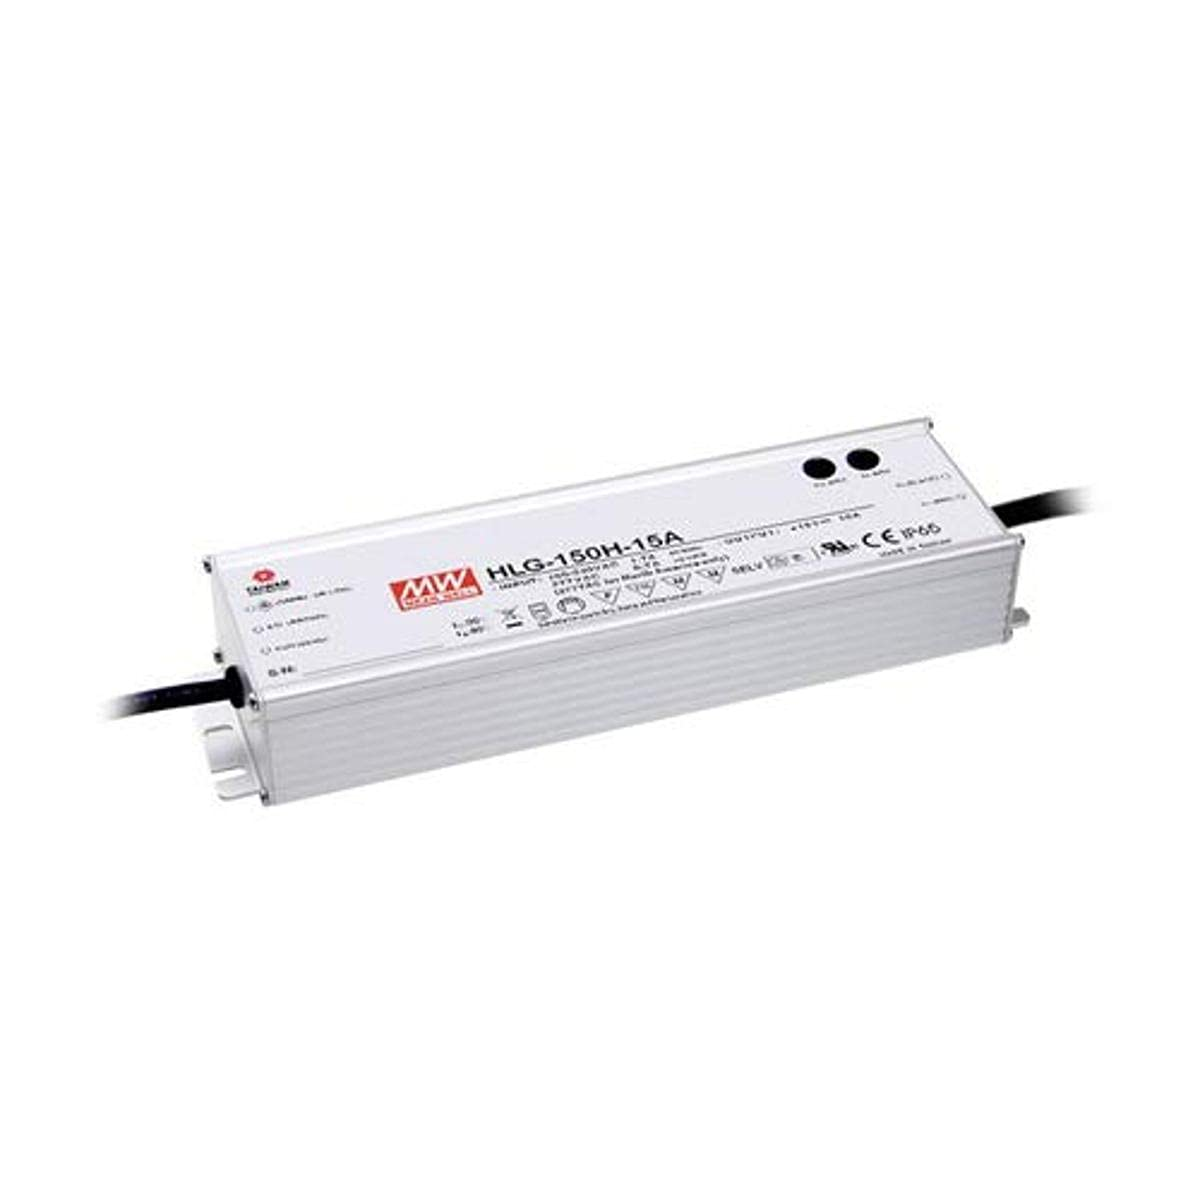 MEAN WELL LED Driver Switching Power Supply, 150W 48V 3.2A - HLG-150H-48A